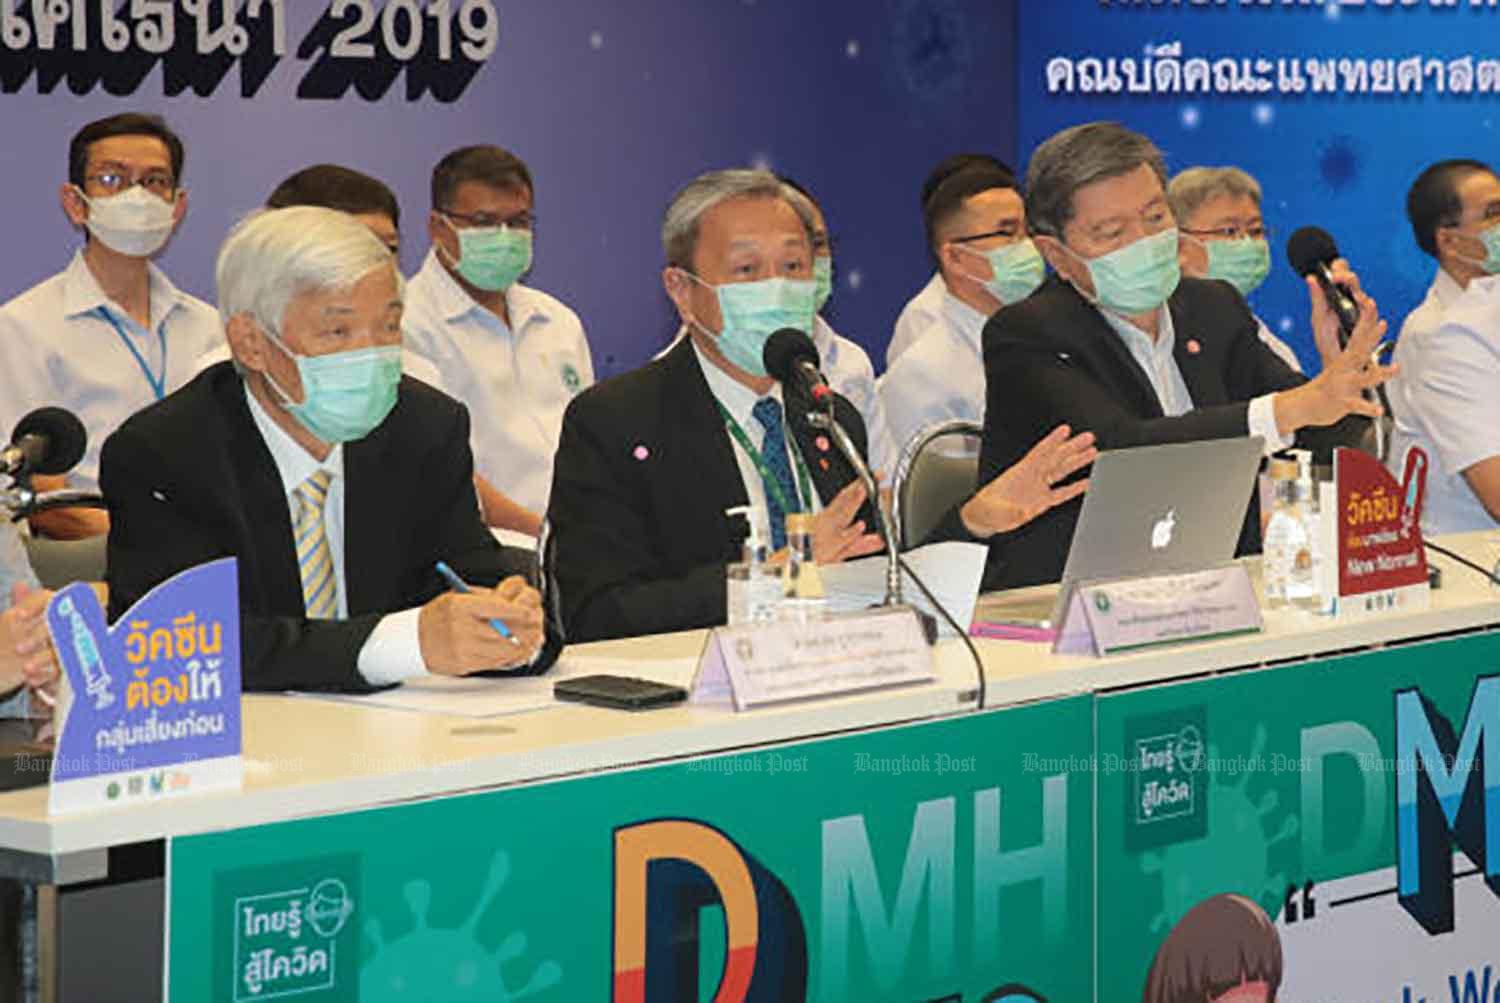 Prof Dr Pasit Watanapa, centre, dean of the faculty of medicine Siriraj Hospital, Prof Dr Yong Poovorawan, left, head of the Centre of Excellence in Clinical Virology at Chulalongkorn University, and Prof Emeritus Dr Piyasakol Sakolsatayadorn, right, adviser on Covid-19 vaccination, hold a press conference on the postponement of use of AstraZeneca's Covid-19 vaccination, at the Public Health Ministry in Nonthaburi on Friday morning. (Photo: Chanat Katanyu)